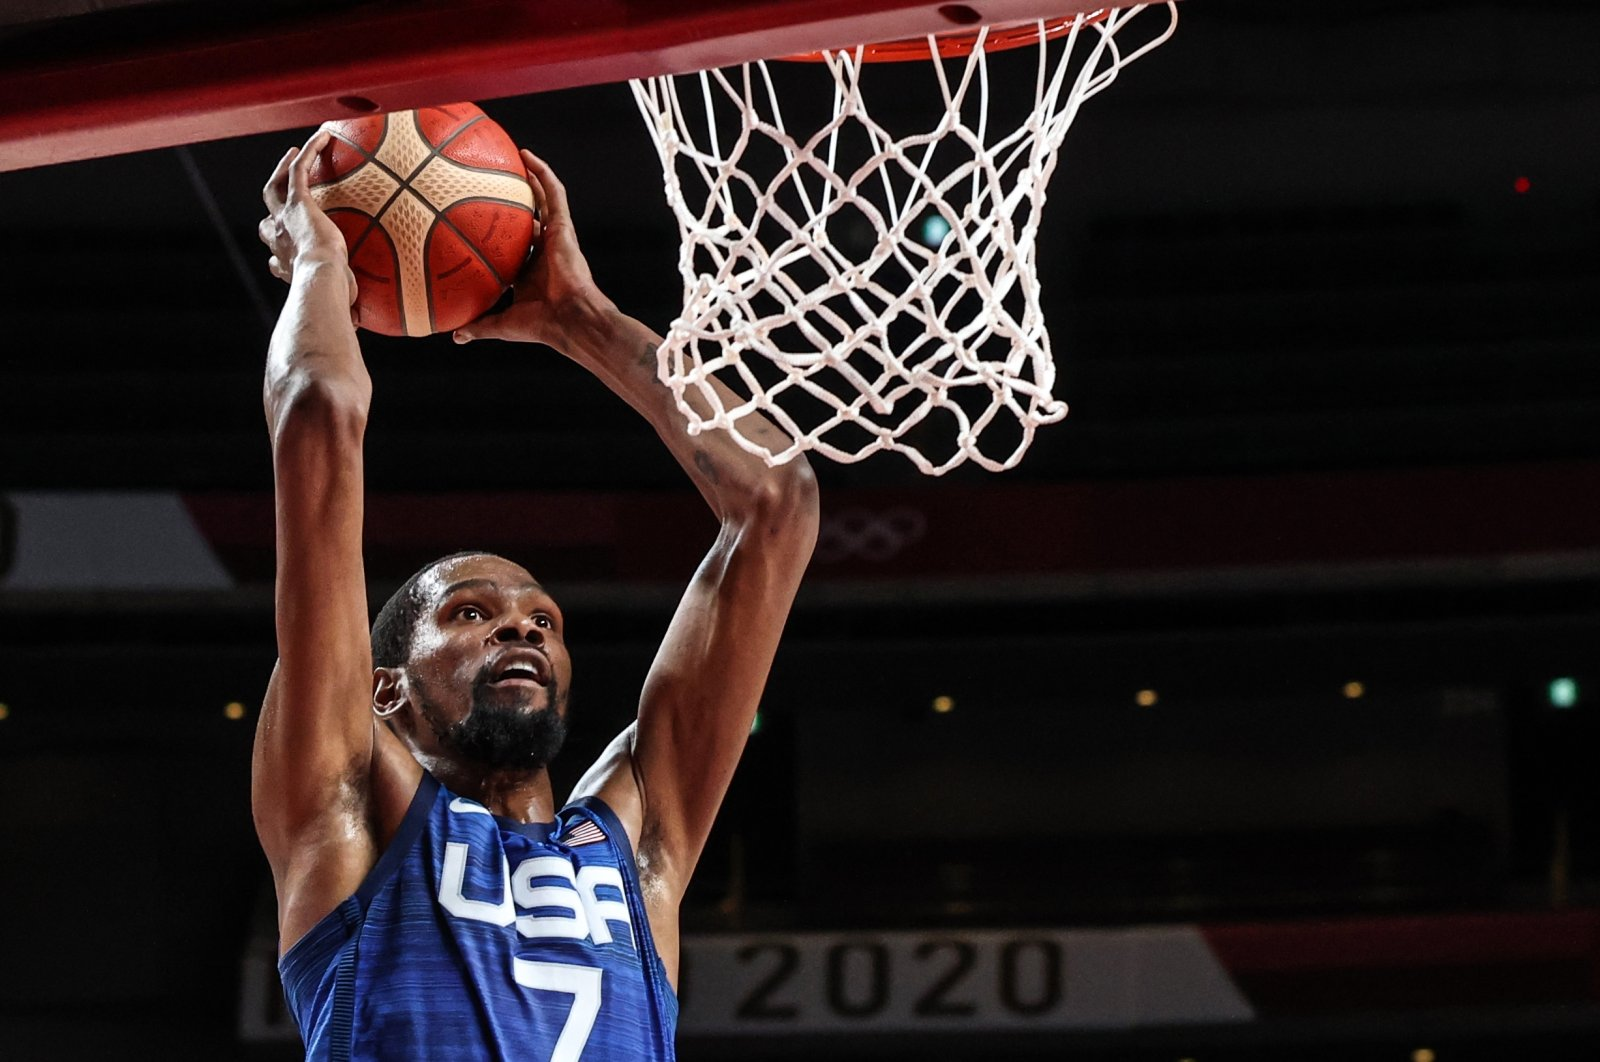 USA's Kevin Wayne Durant (L) goes for the basket in the men's quarterfinal match against Spain during the Tokyo 2020 Olympic Games at the Saitama Super Arena, Saitama, Japan, Aug. 3, 2021.  (AA Photo)